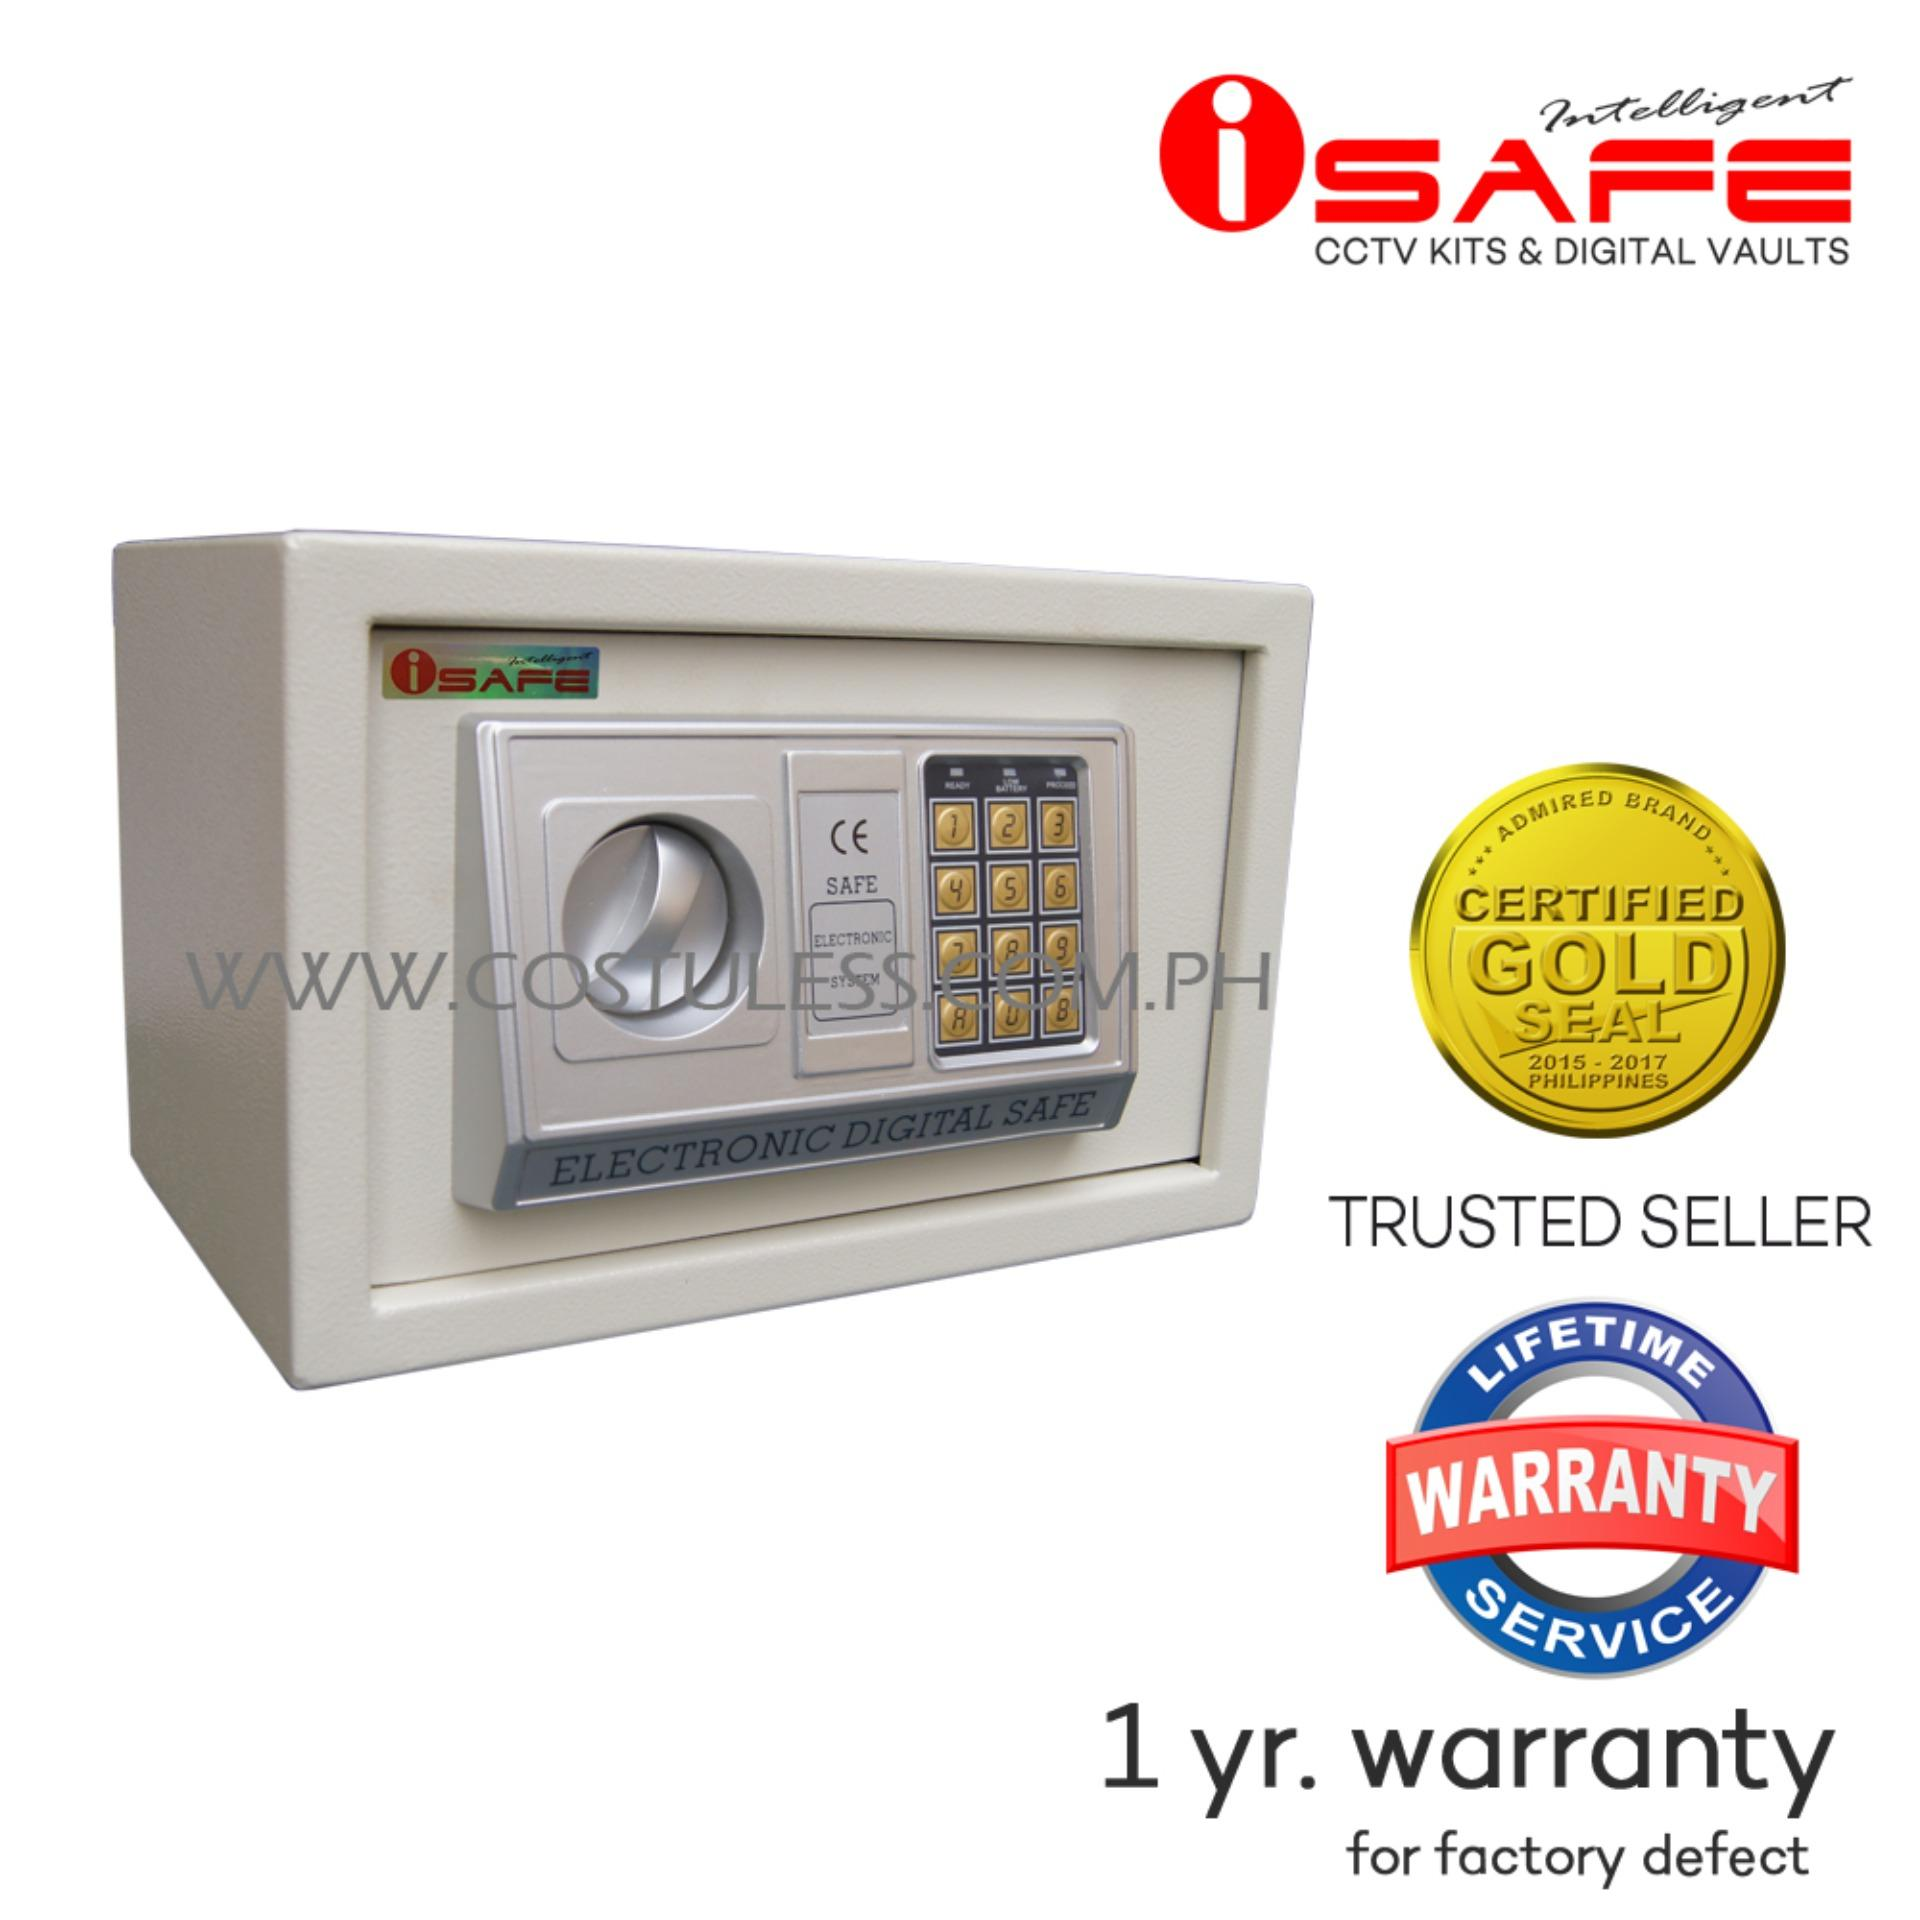 iSafe Philippines: iSafe price list - iSafe Safety Vaults & Storage